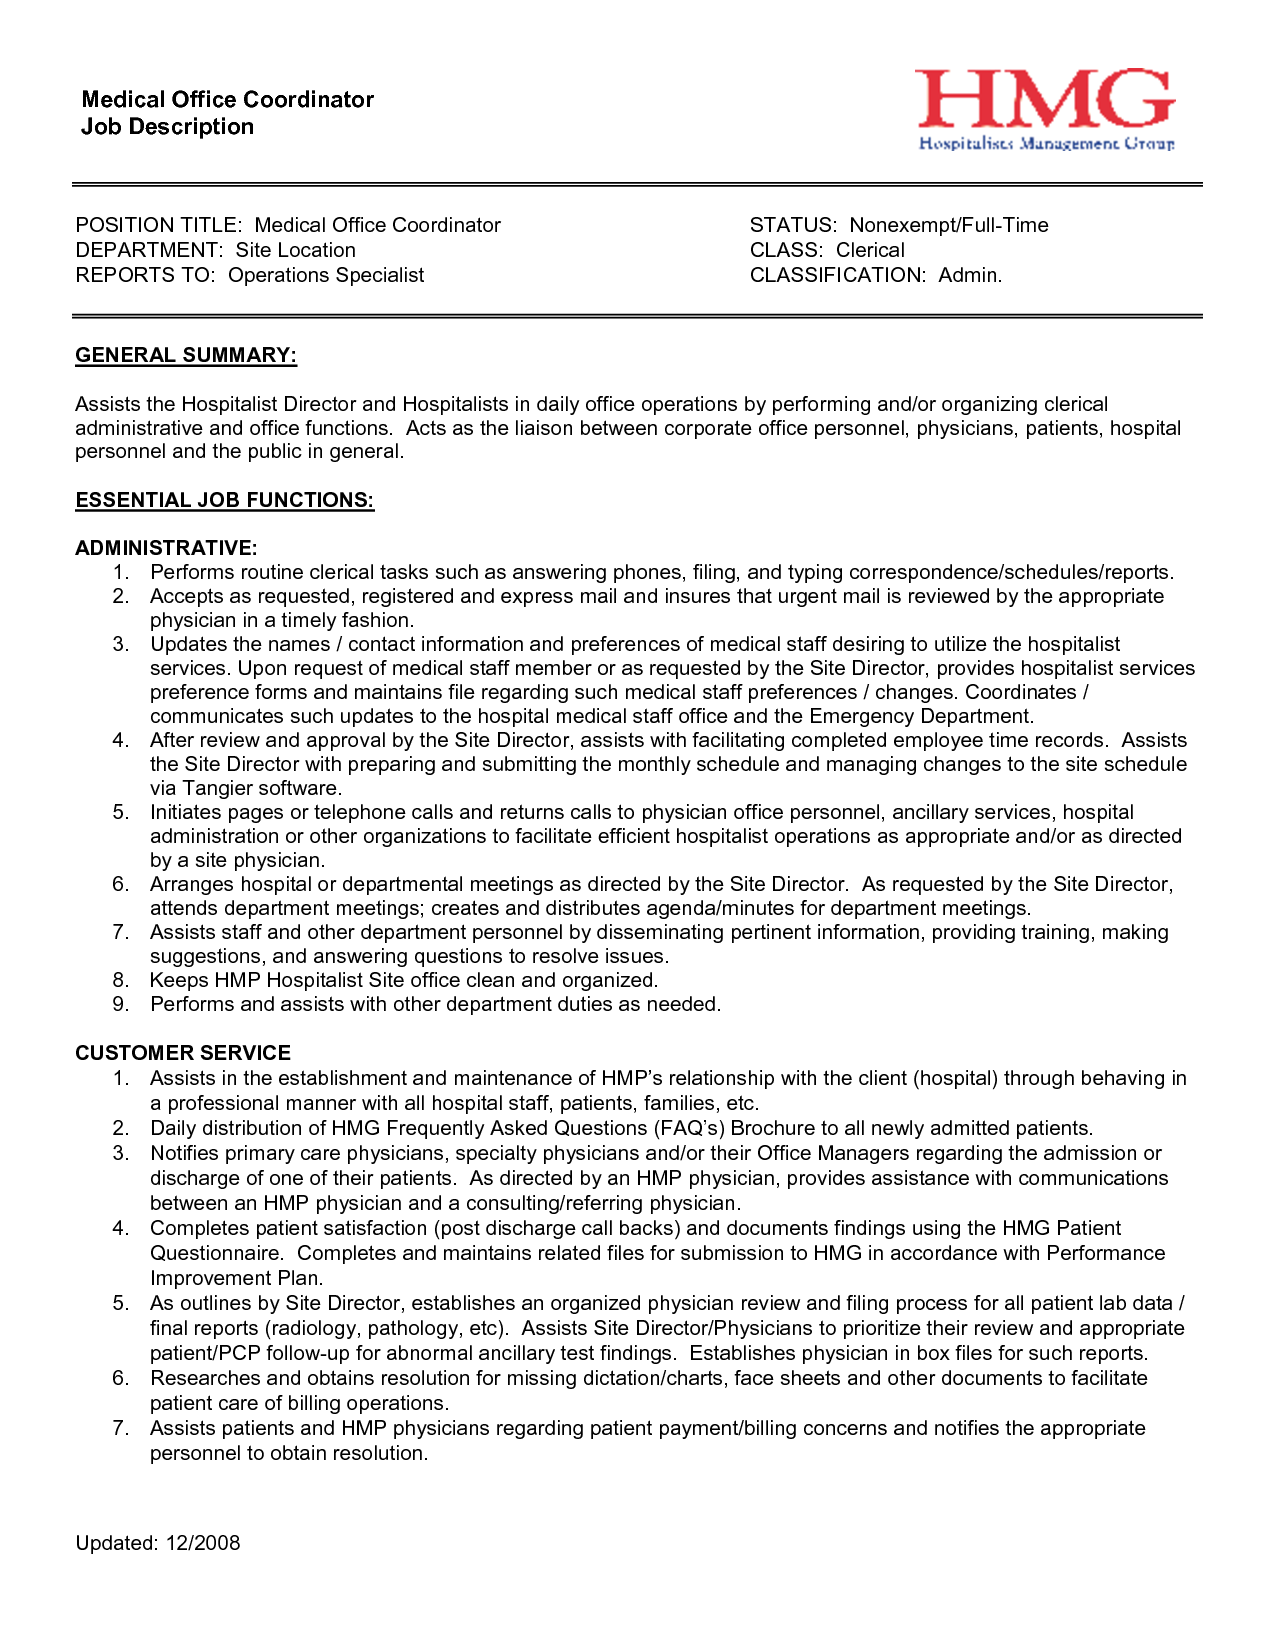 10 Project Coordinator Job Description SampleBusinessResume – Coordinator Job Description